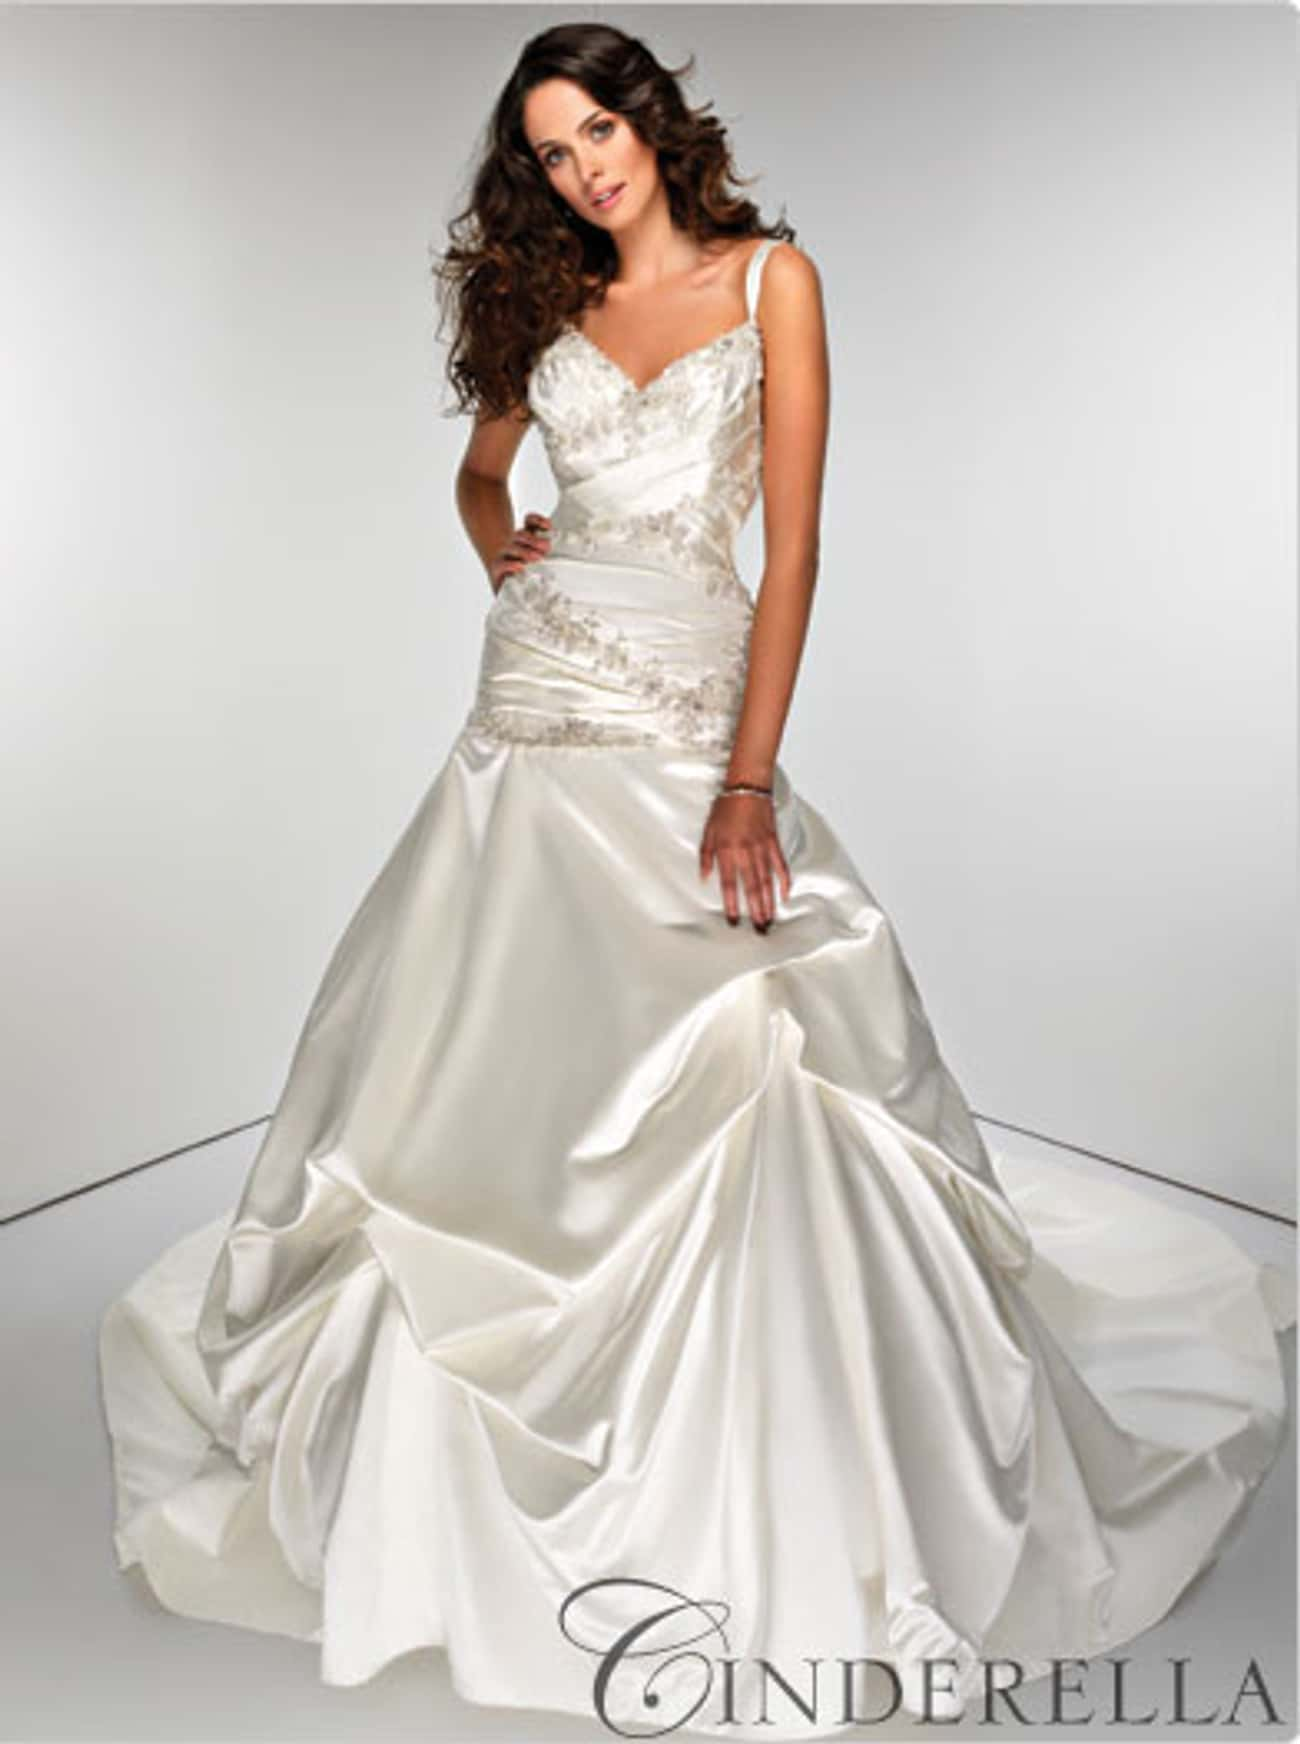 Cinderella is listed (or ranked) 3 on the list Disney Bridal Gowns: Have a Disney Princess Wedding